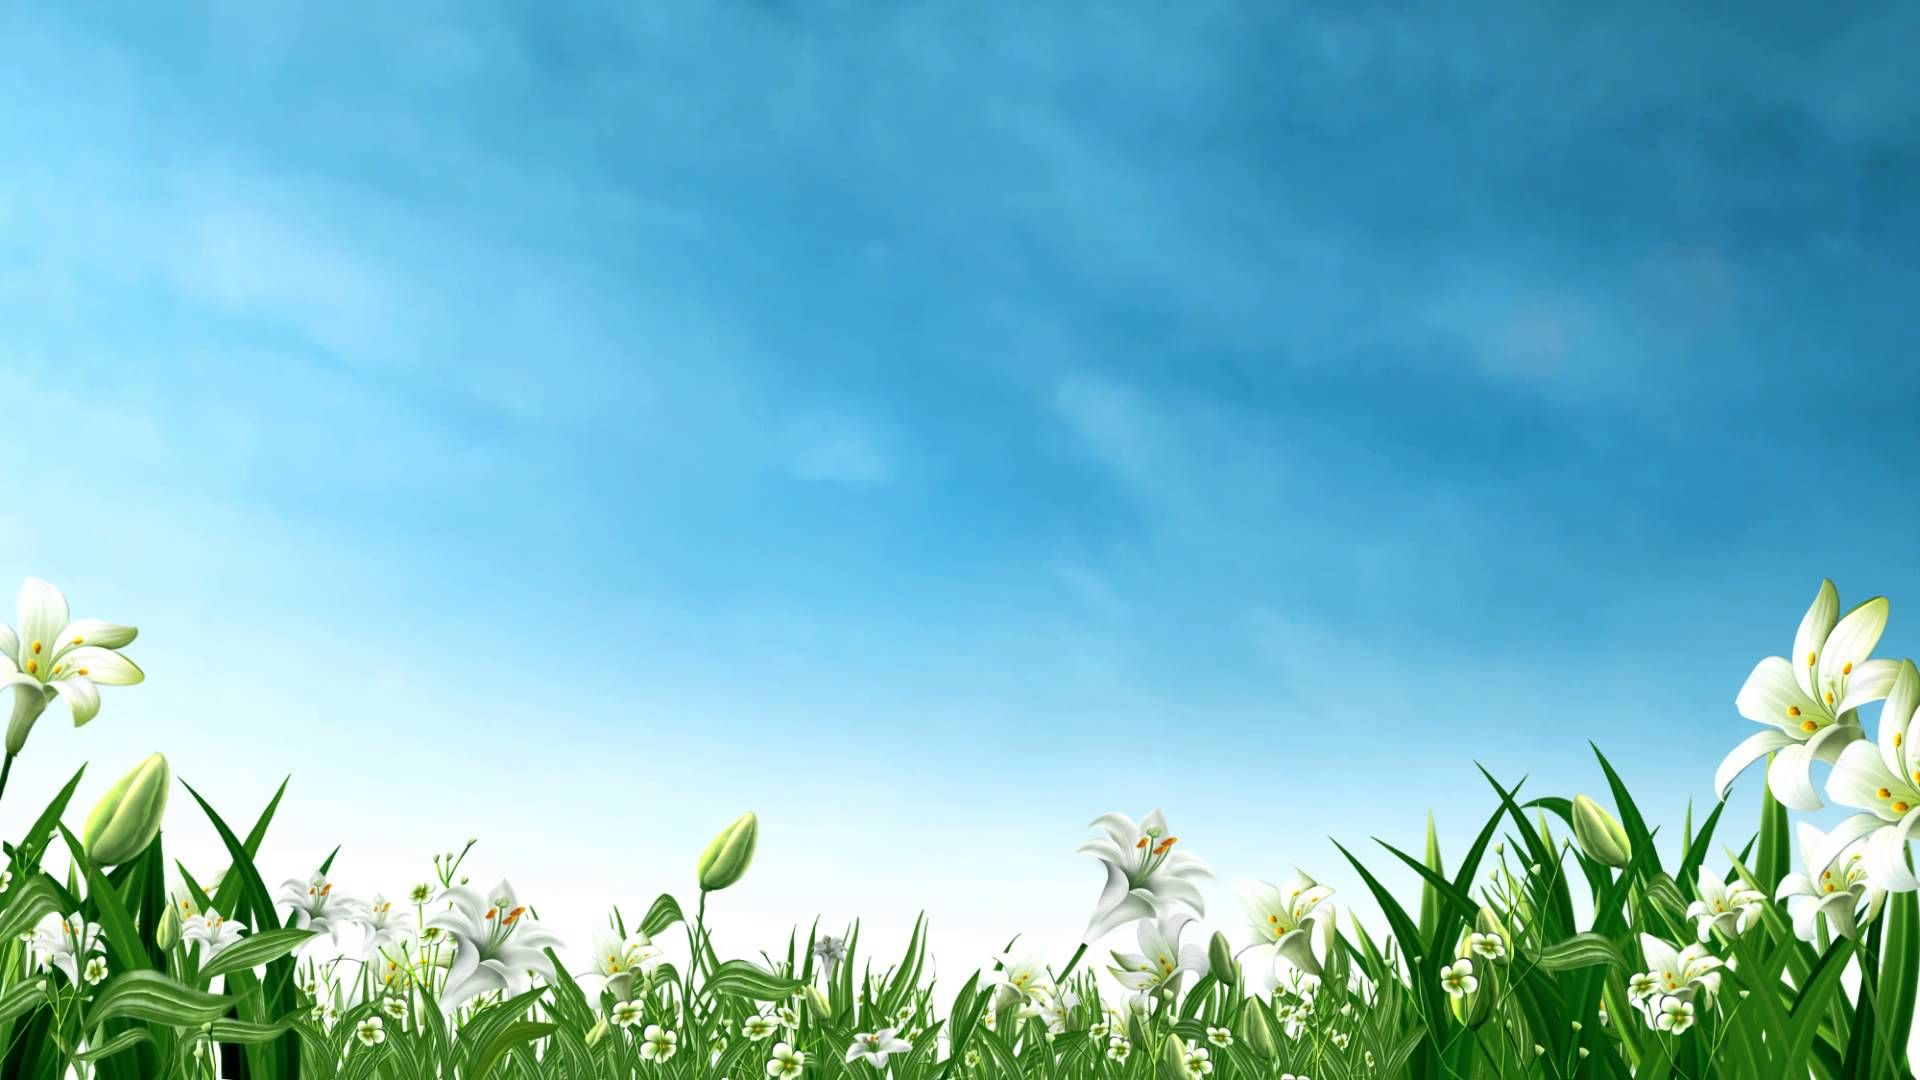 Video Background Hd Landscape Hd Style Proshow Styleproshow Nature Pictures Nature Gif Nature Images